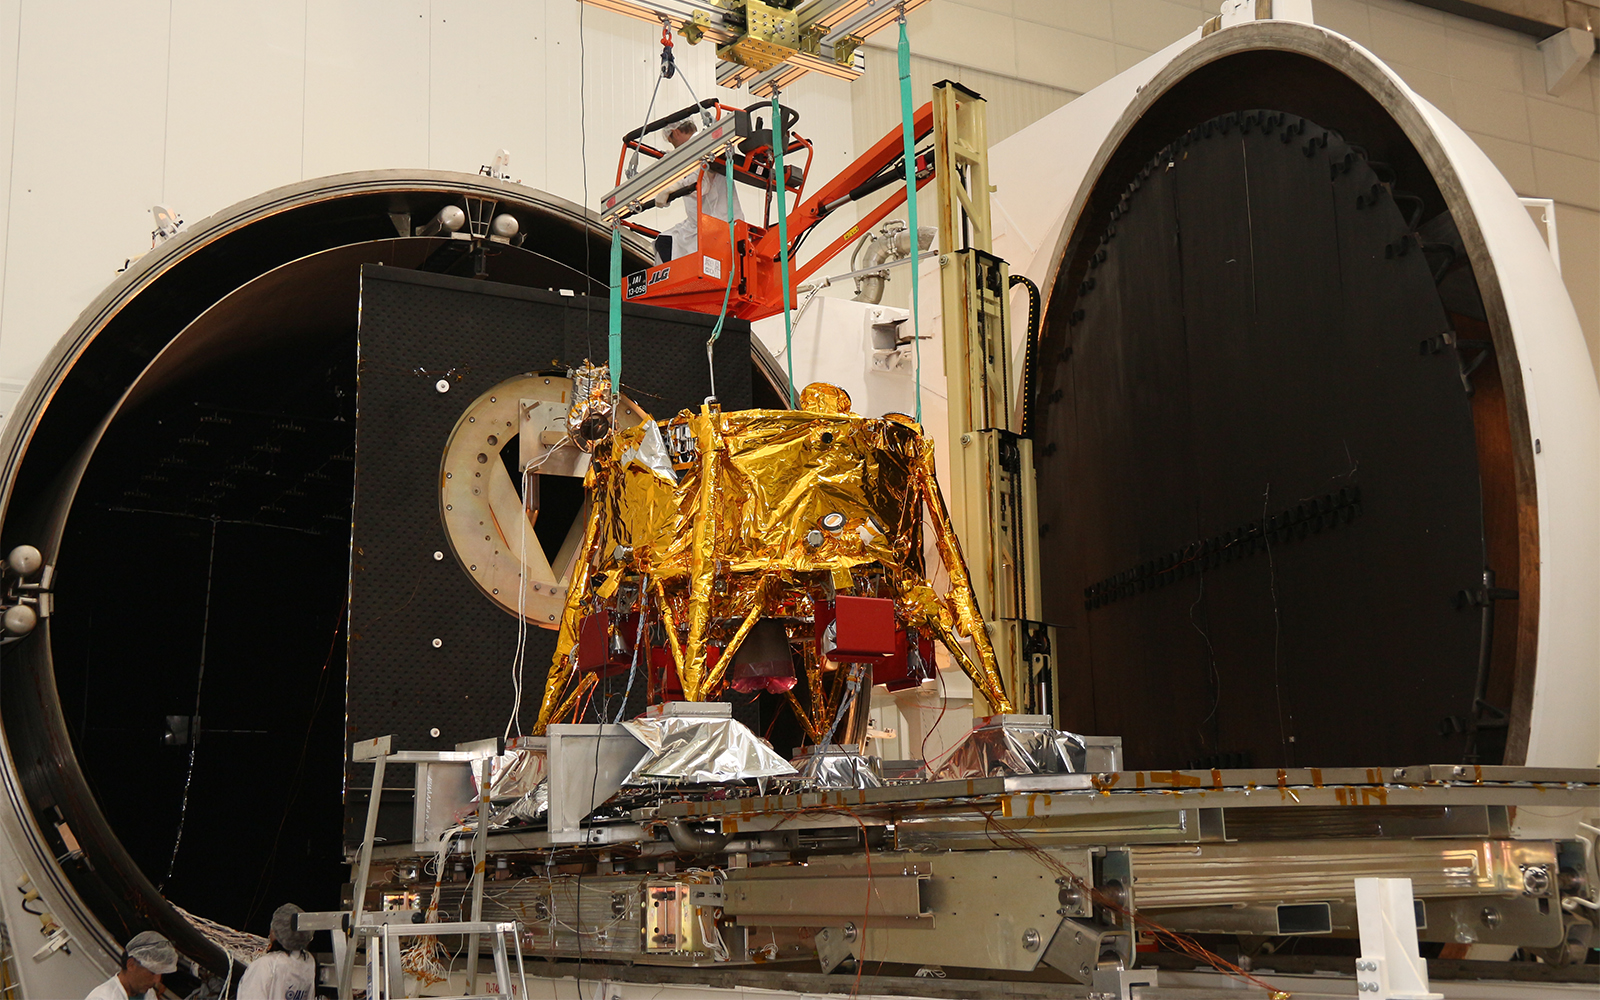 Israeli spacecraft fails to become first commercial moon lander